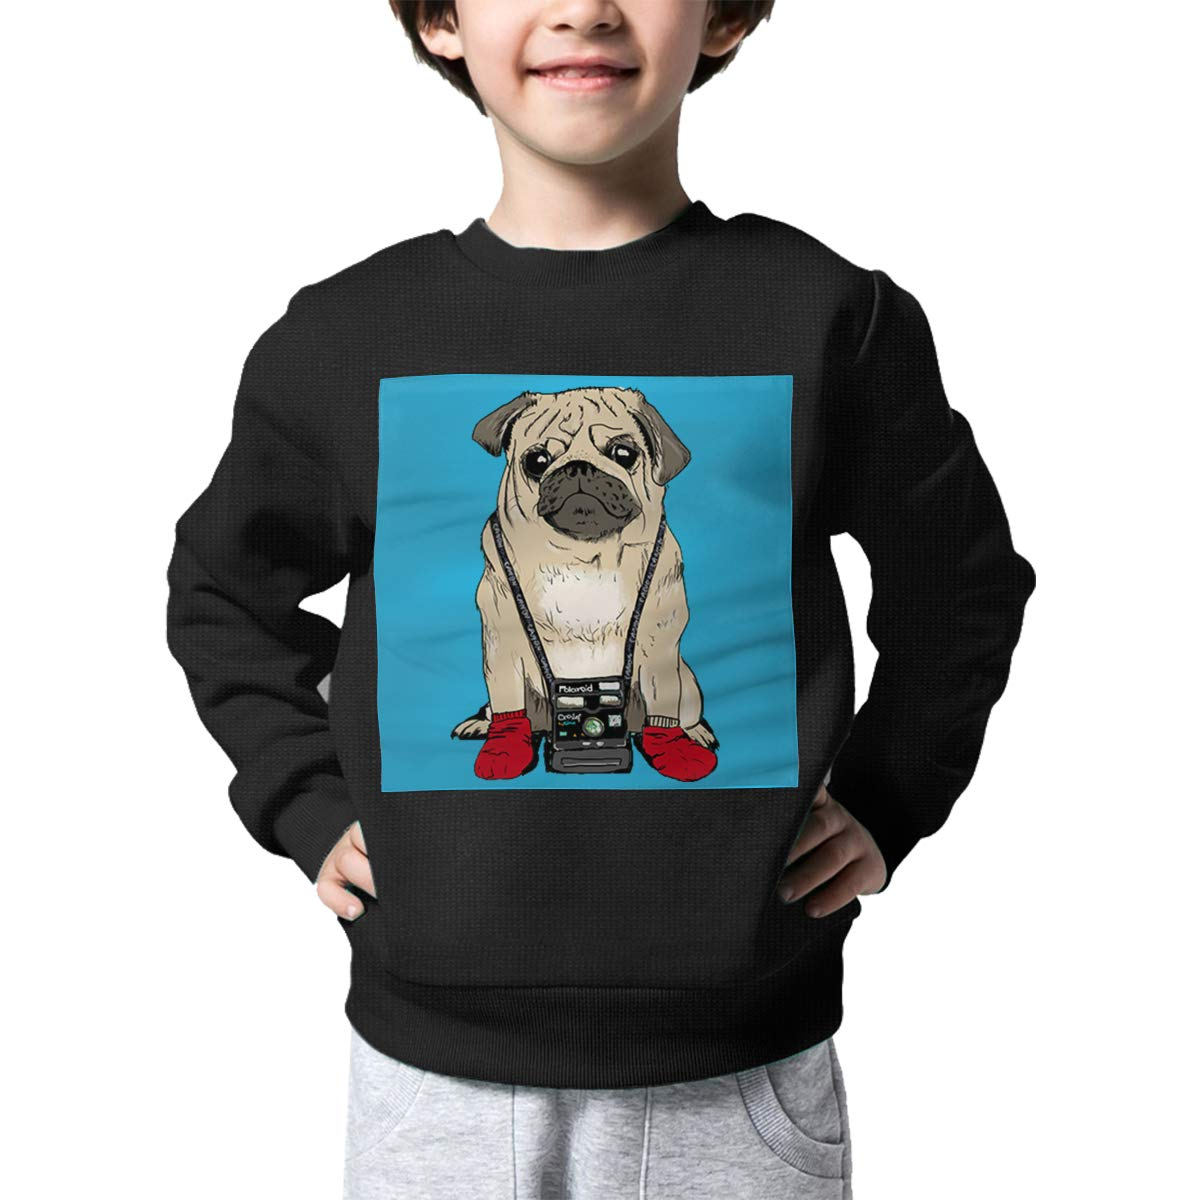 Rainbowhug Photographer Pug Dog Kids Sweater Ugly Warm Sweater Toddler for Girls Boys